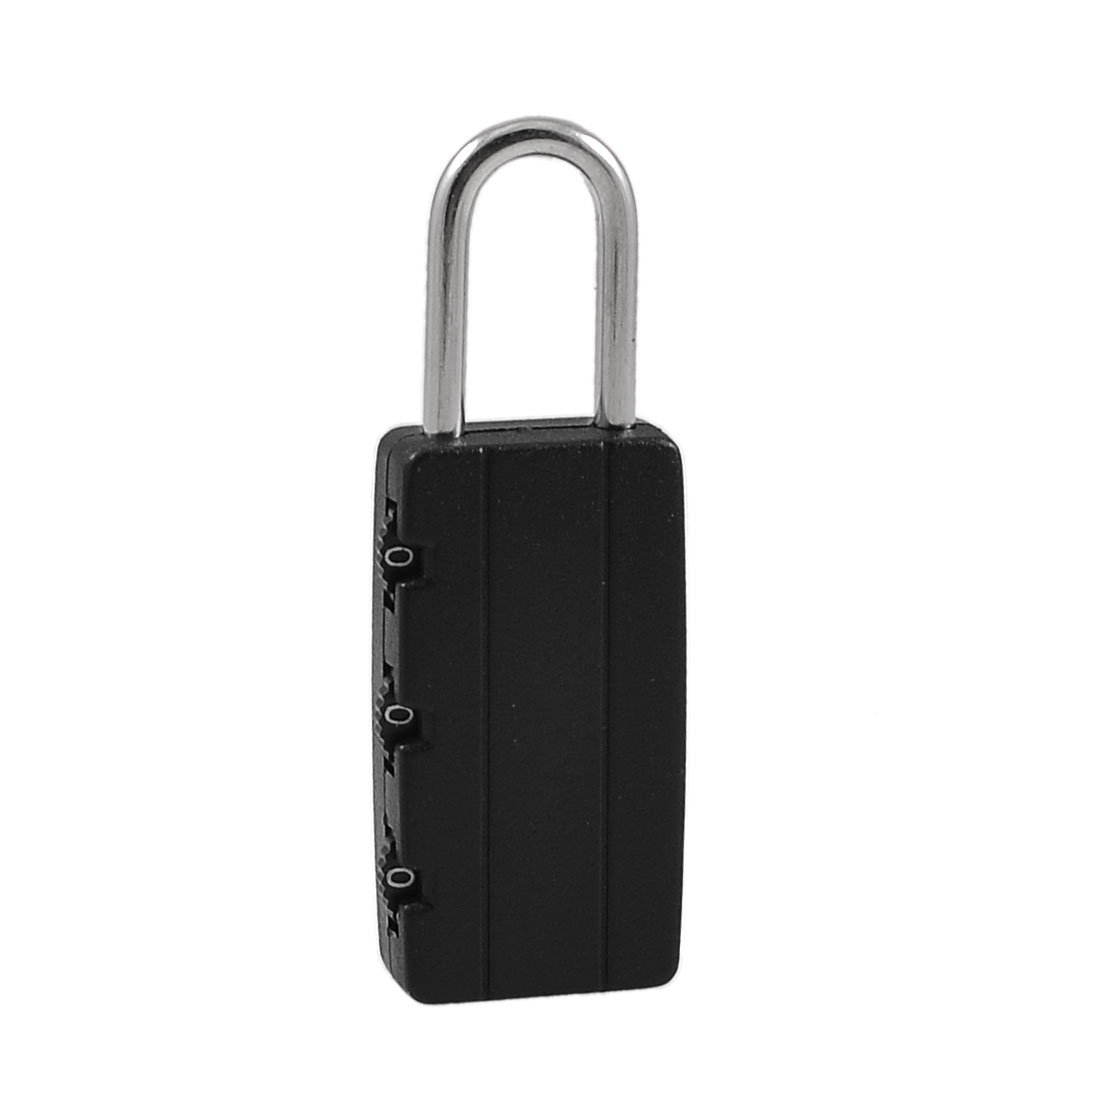 Travel 3 Dial Resettable Lock Luggage Suitcase Combination Padlock